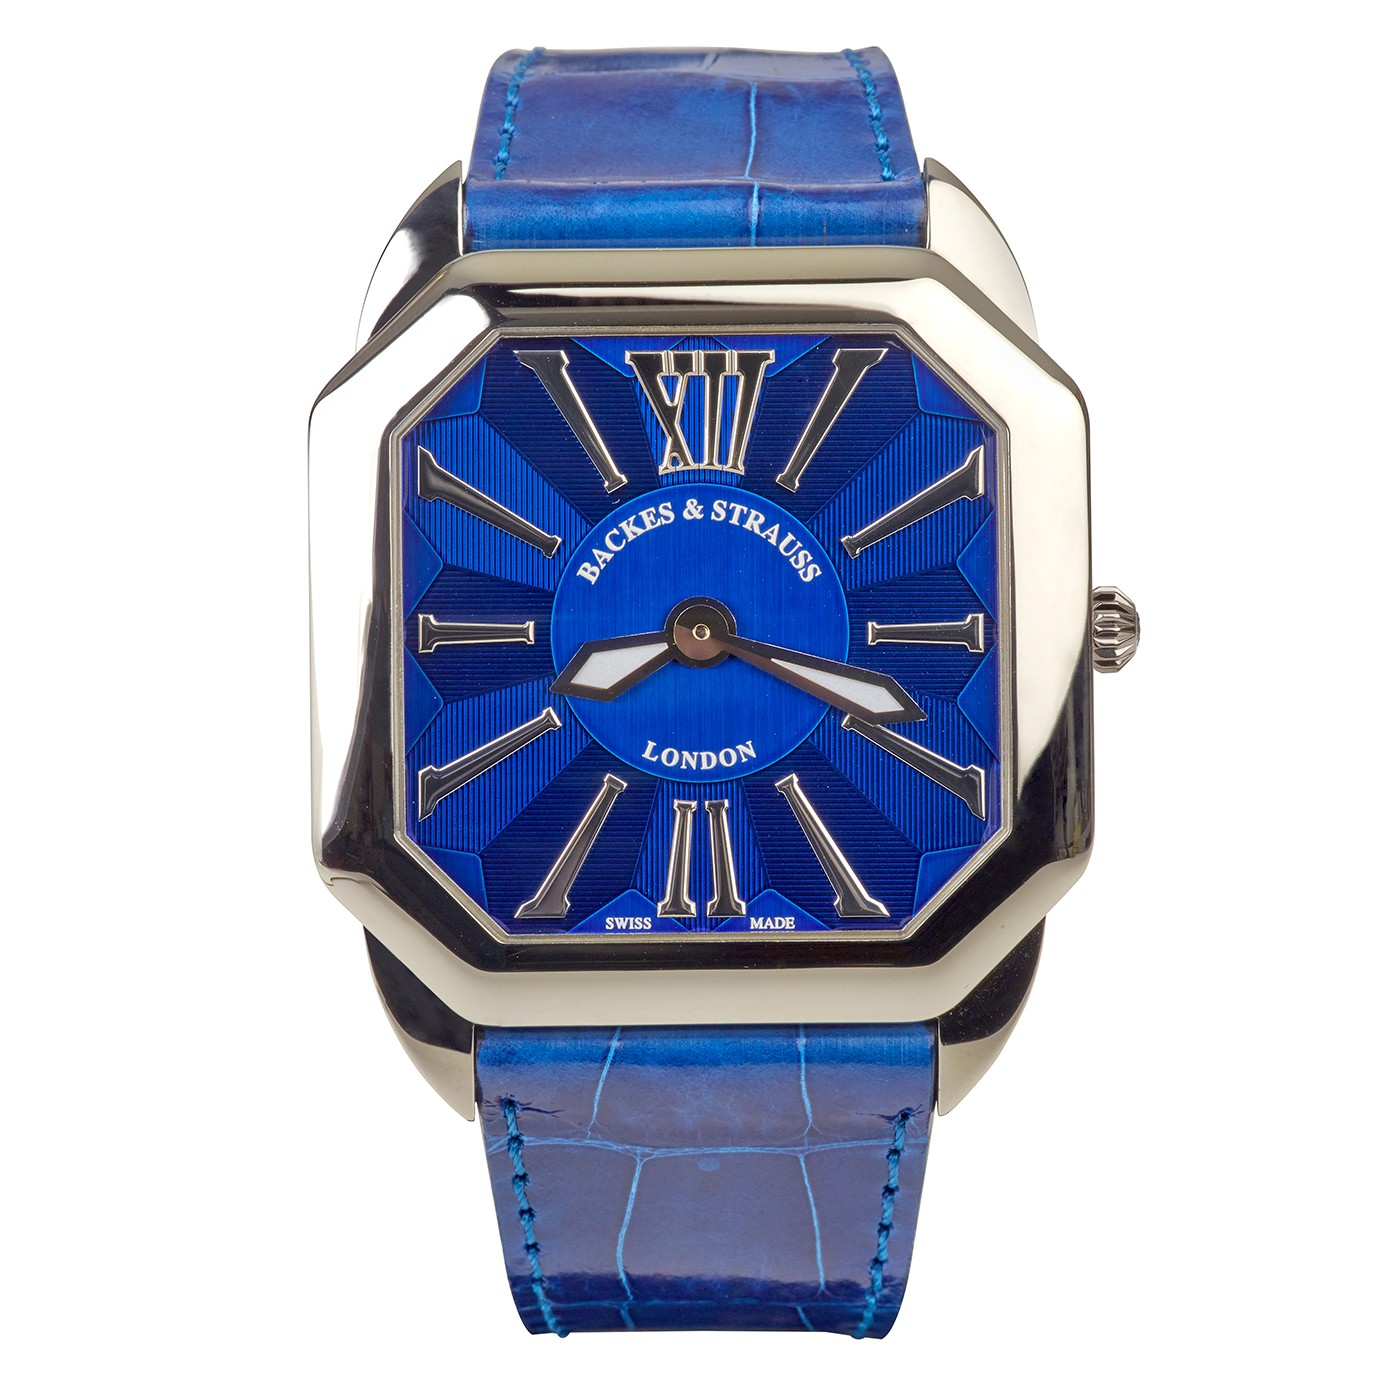 Berkeley Renaissance 43 Diamond Watch Blue Leather Strap